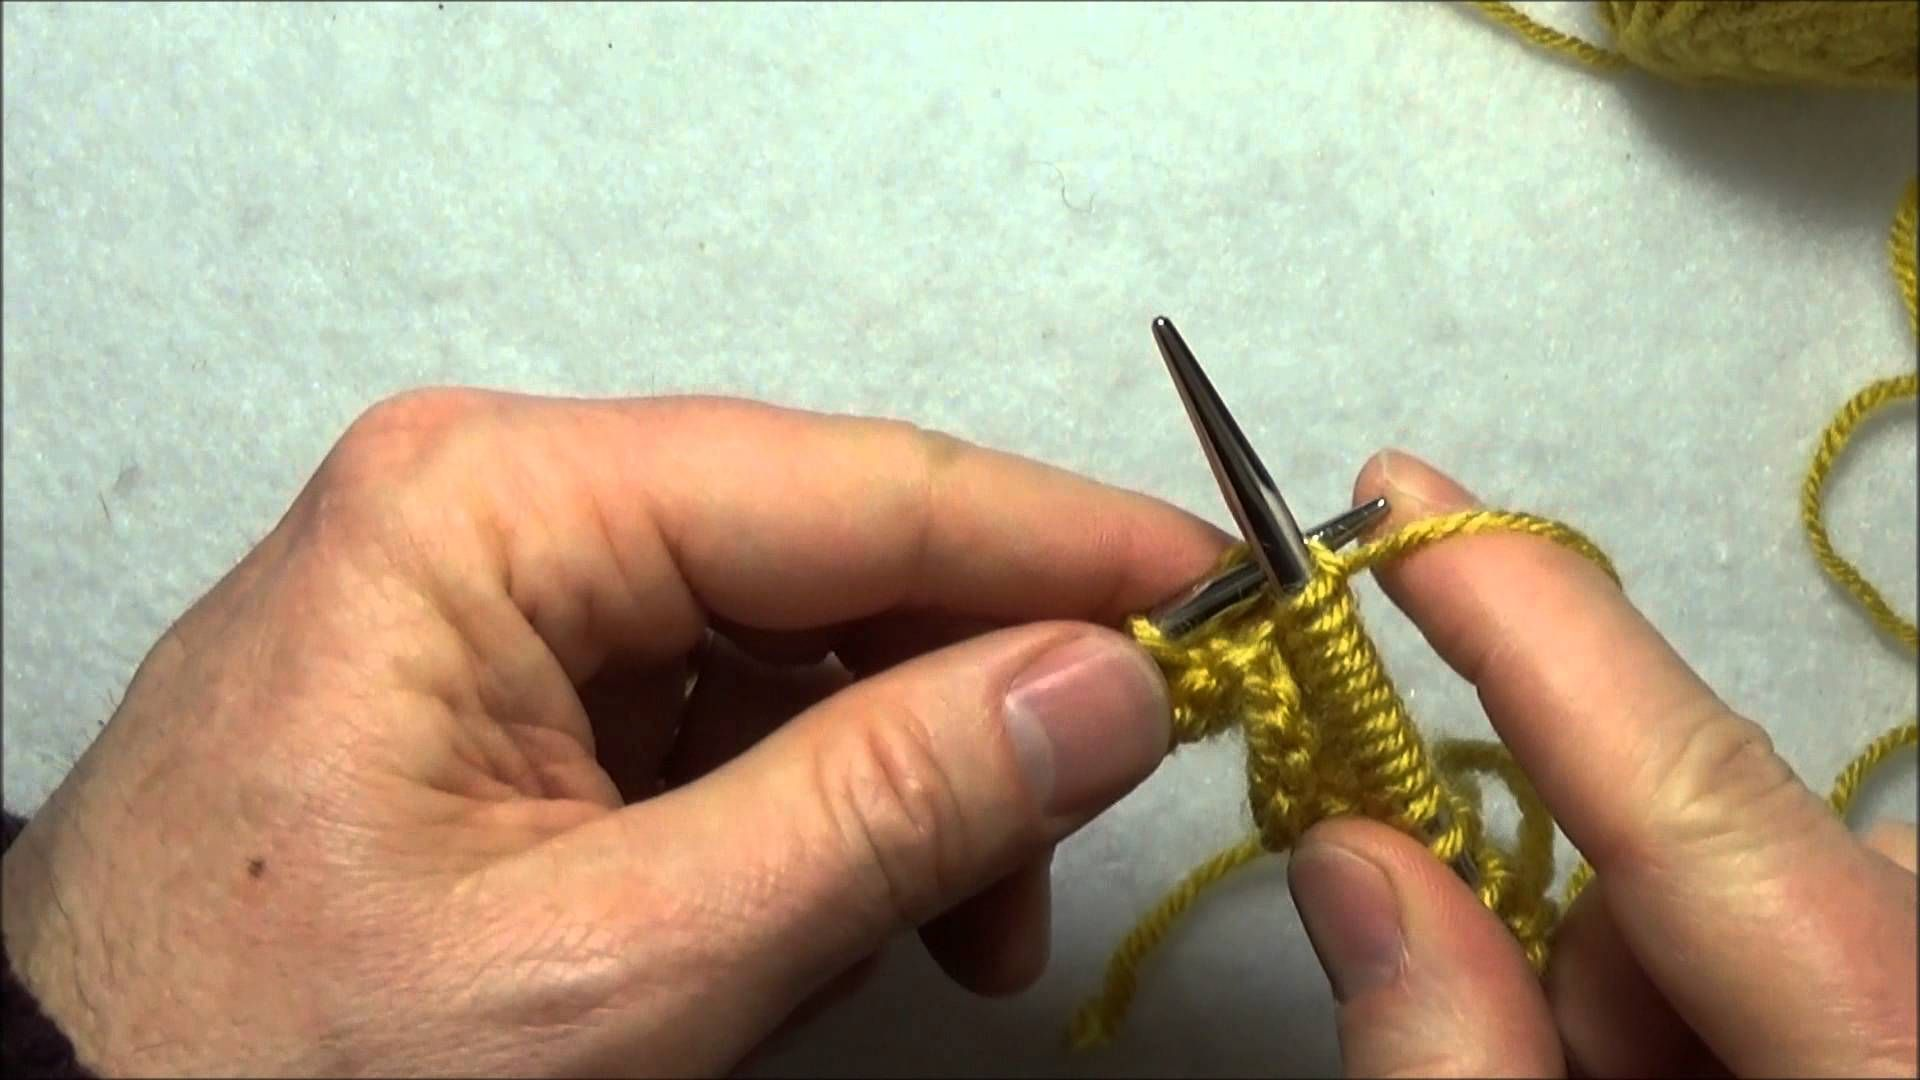 Comment Tricoter Le Motif En Eventail Knitting Stitches Tricot Crochet Knitting